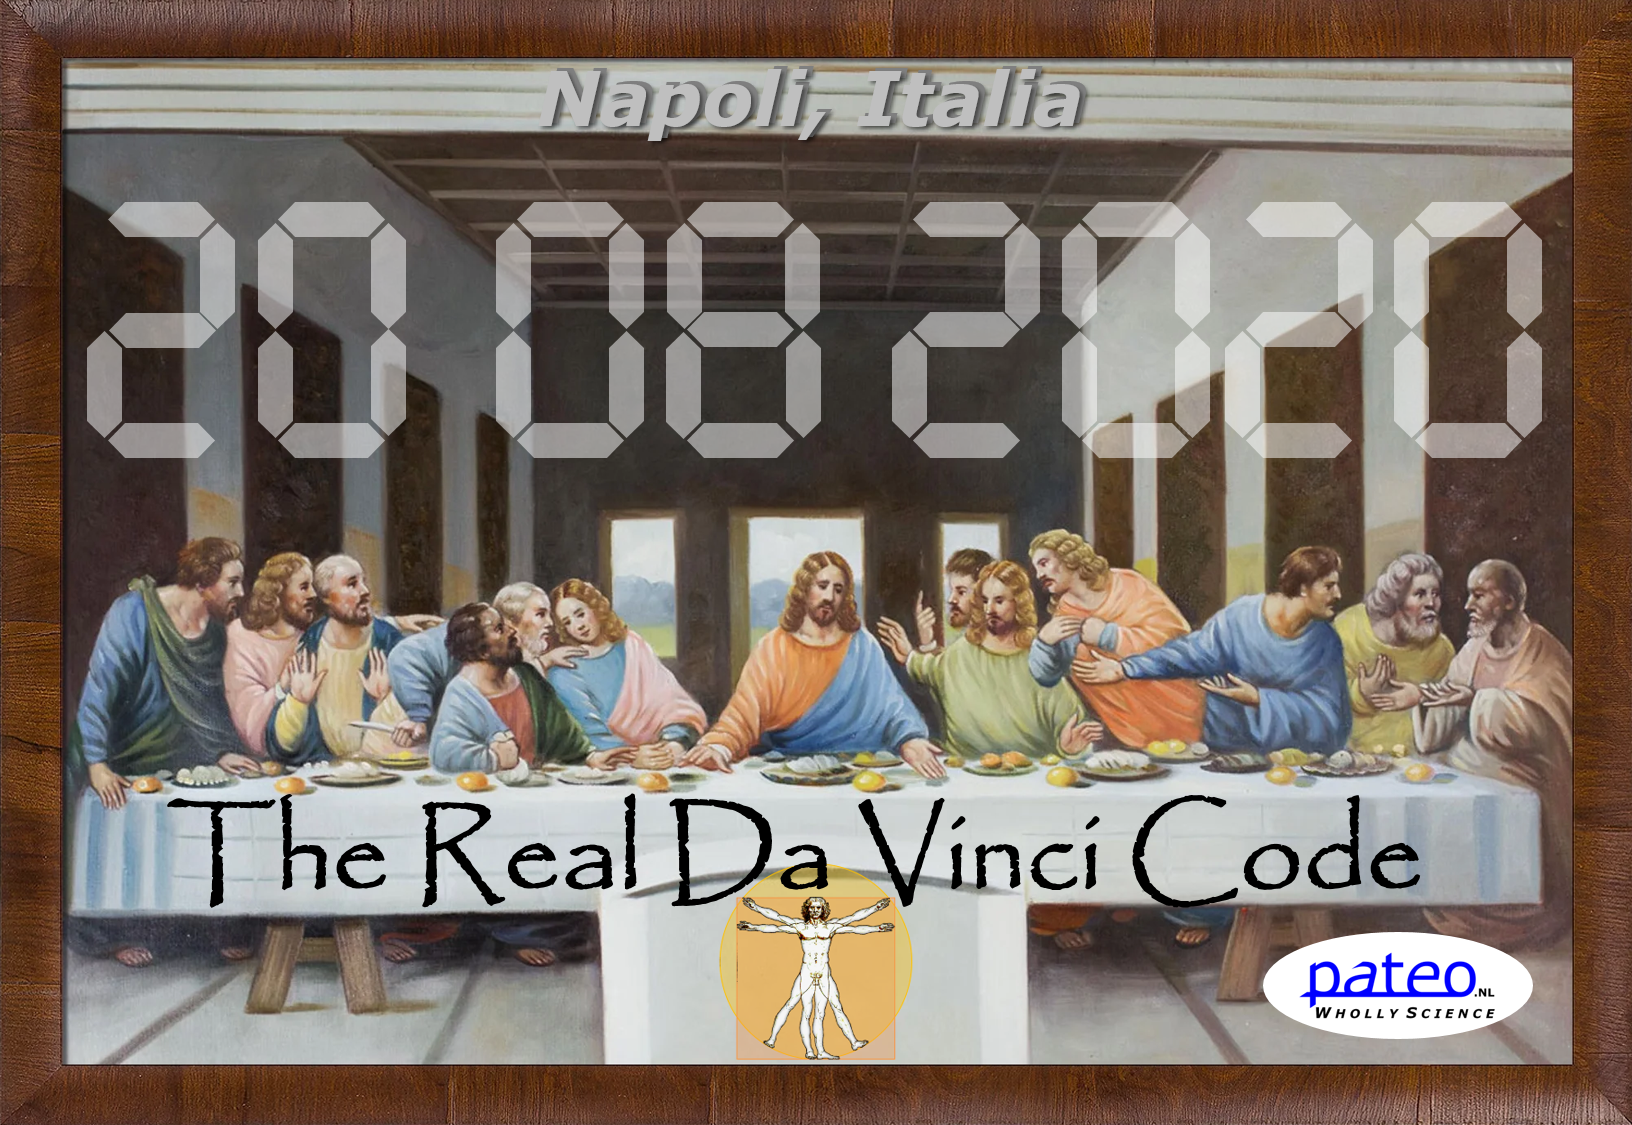 The Real Da Vince Code